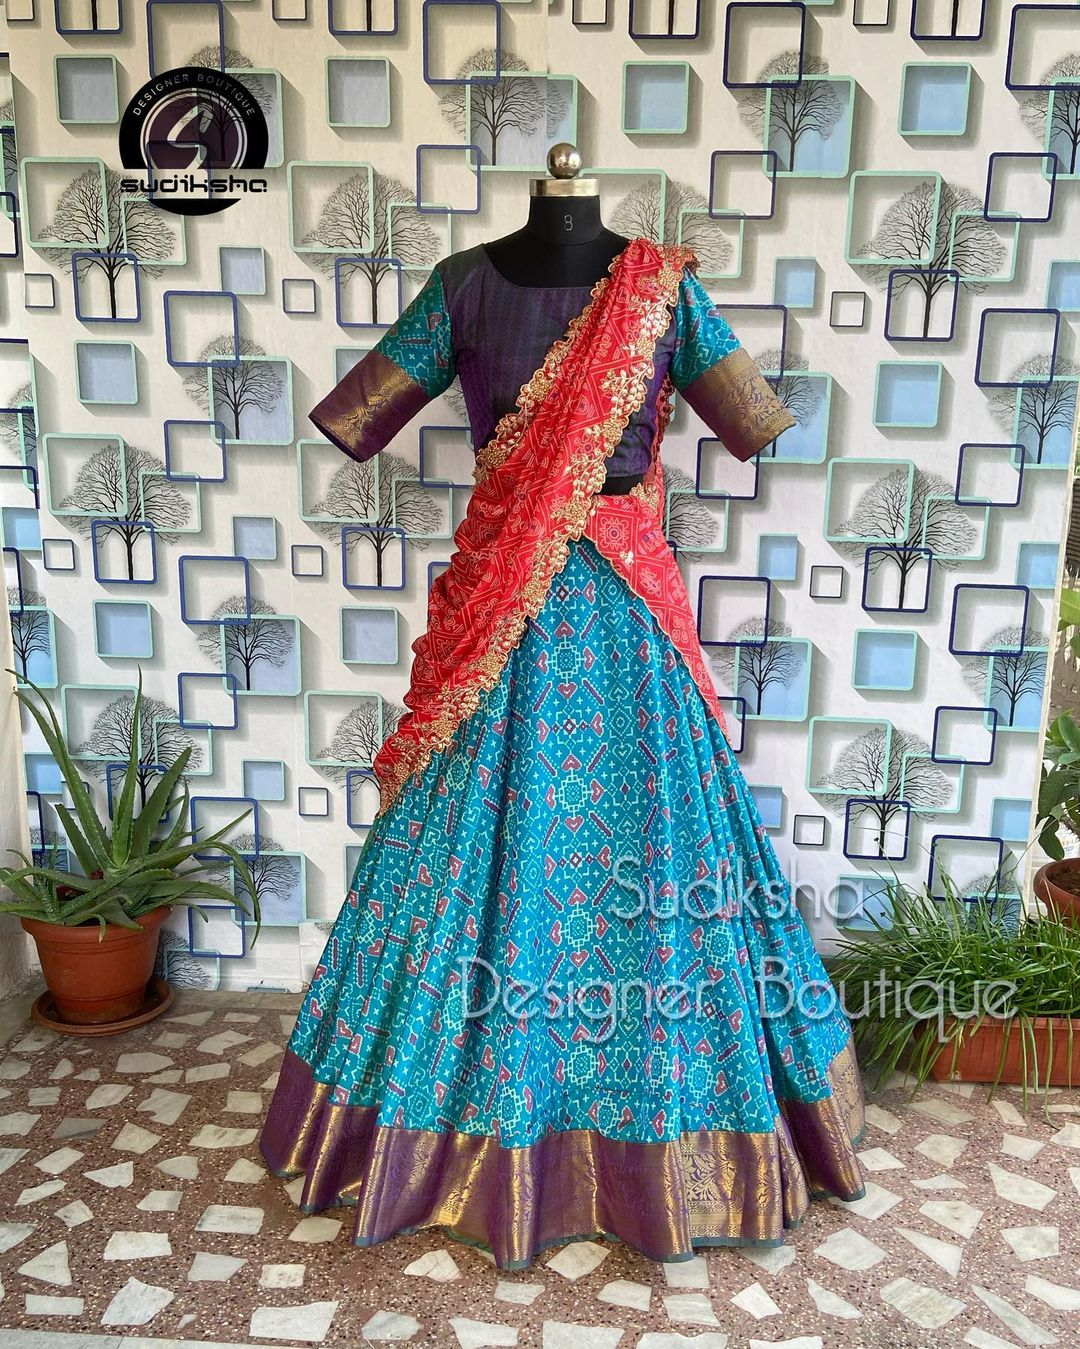 Stunning teal blue color pattu boarder lehenga and blouse with red net cit work dupatta. This outfit available at Rs 5800/- 2021-09-09